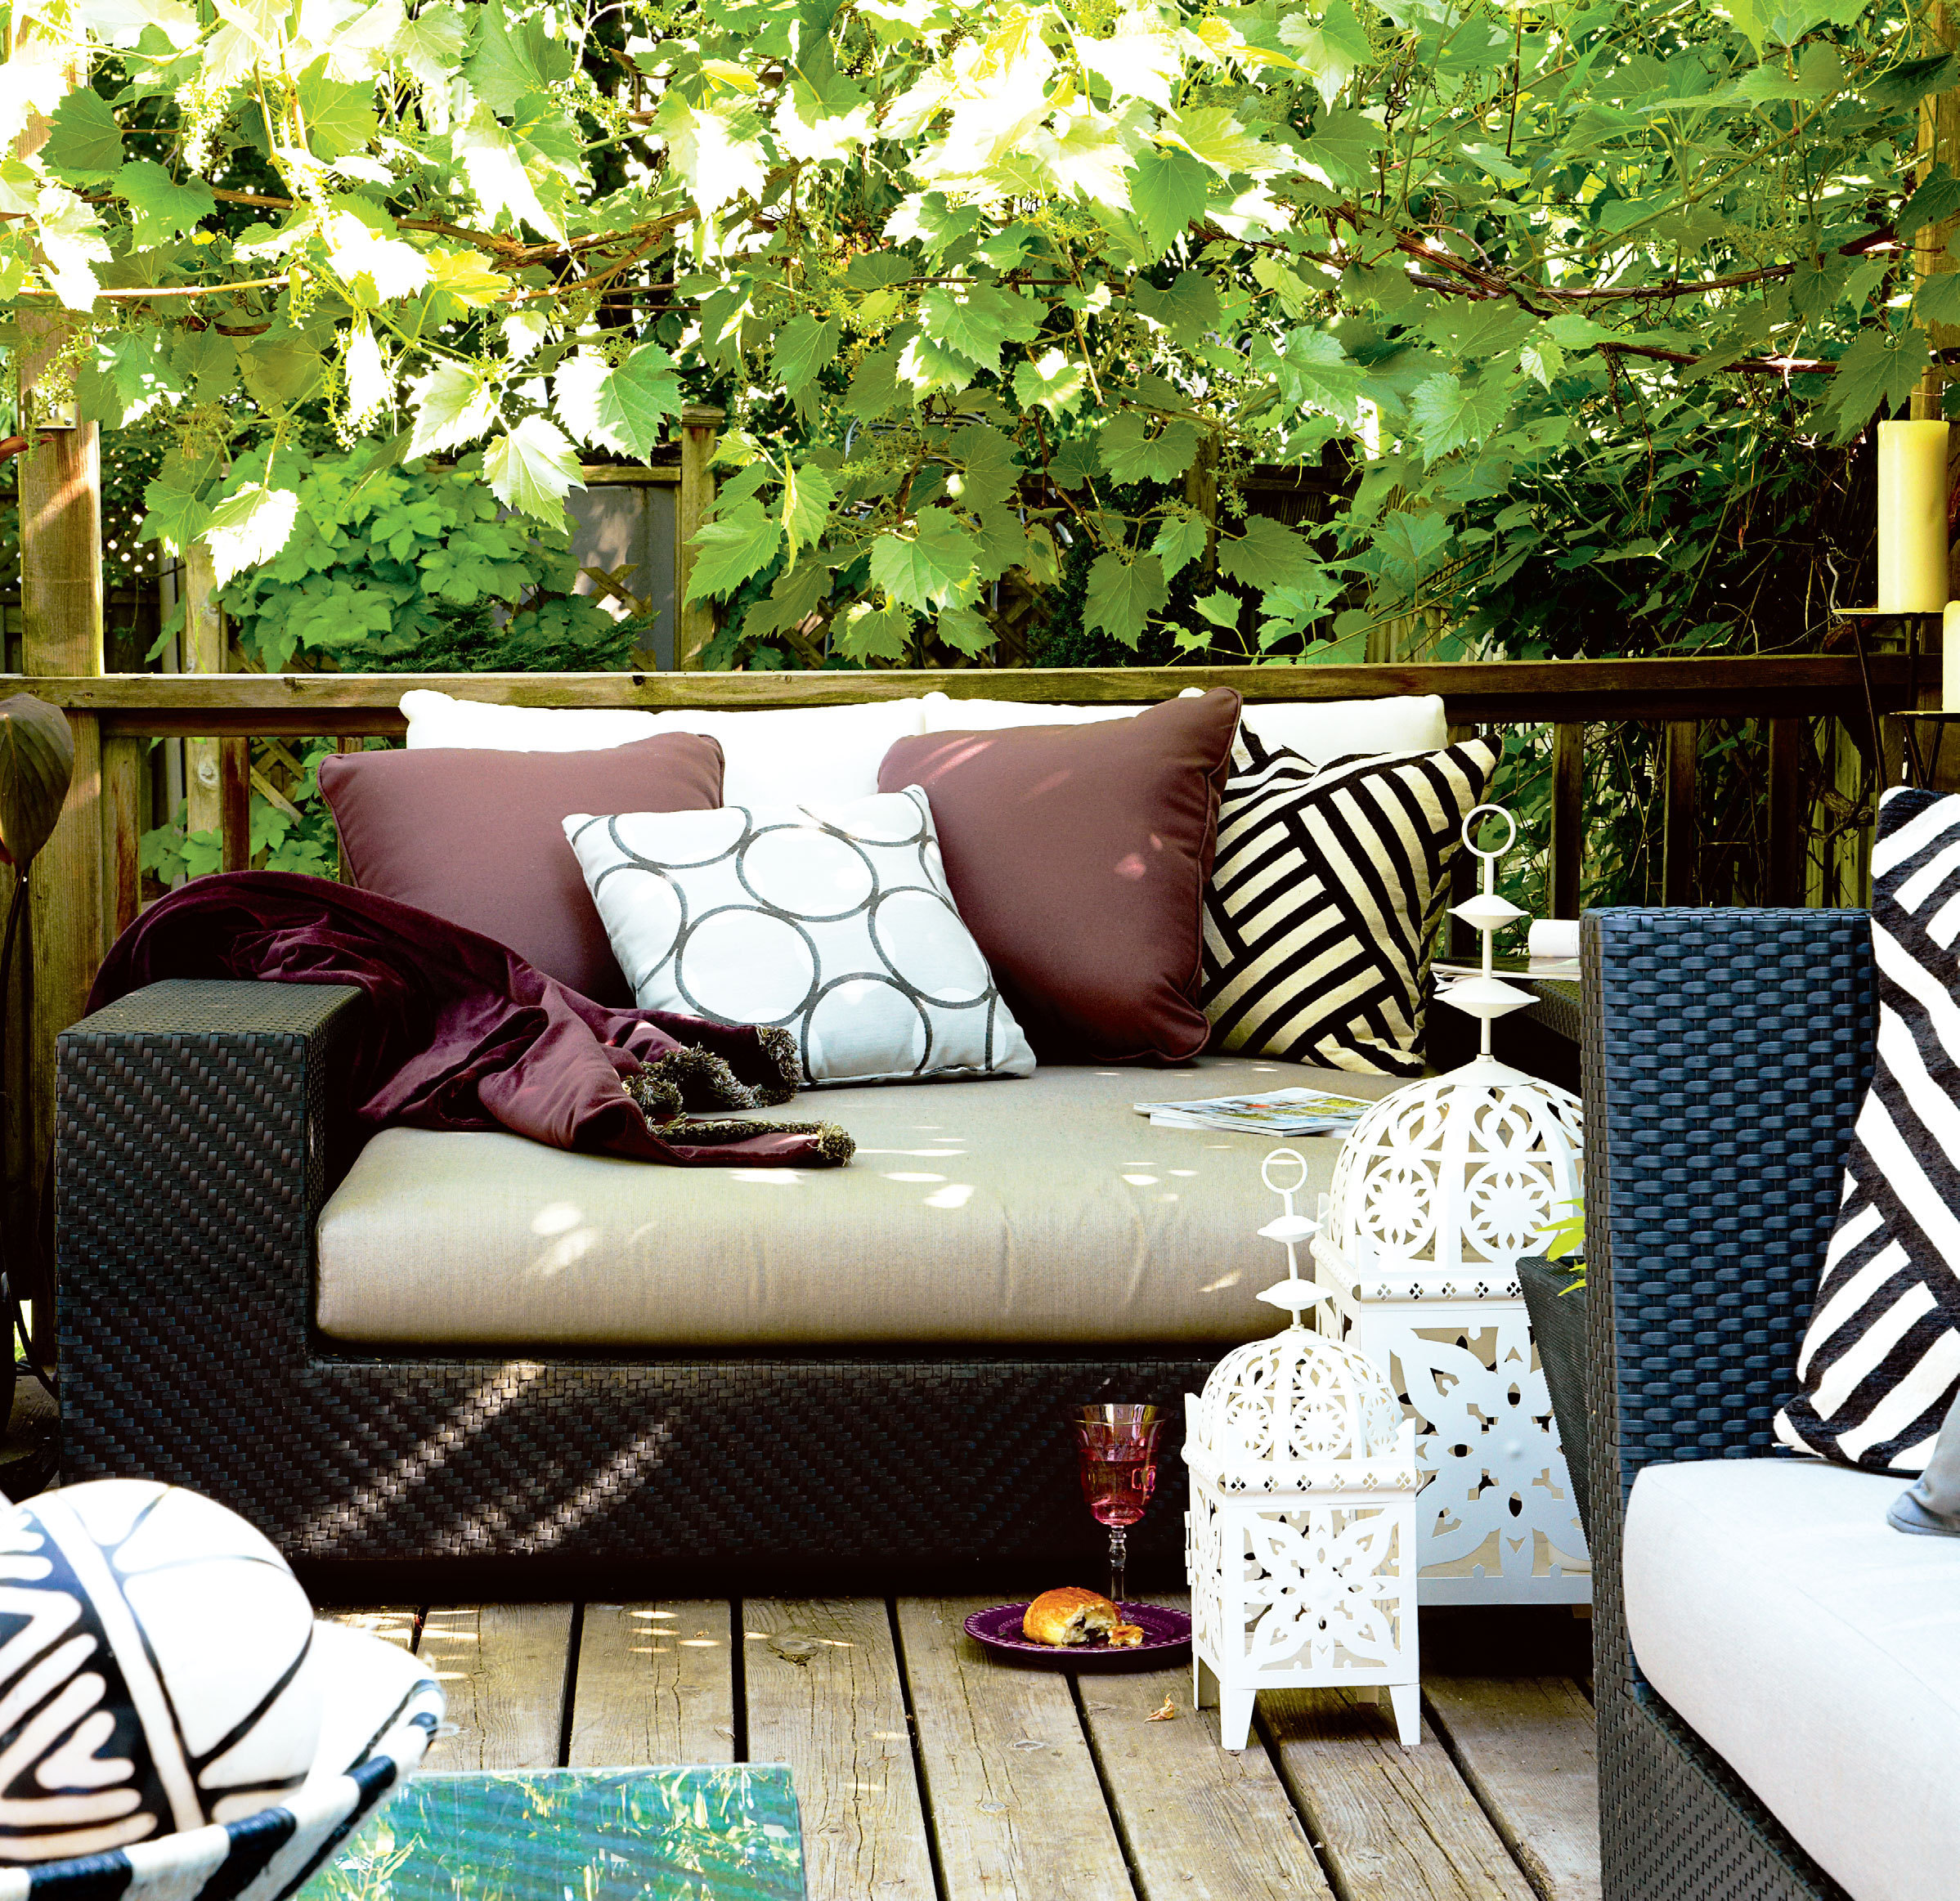 designs insight decorations party home decor summer decorate an diy ideas backyard outdoor